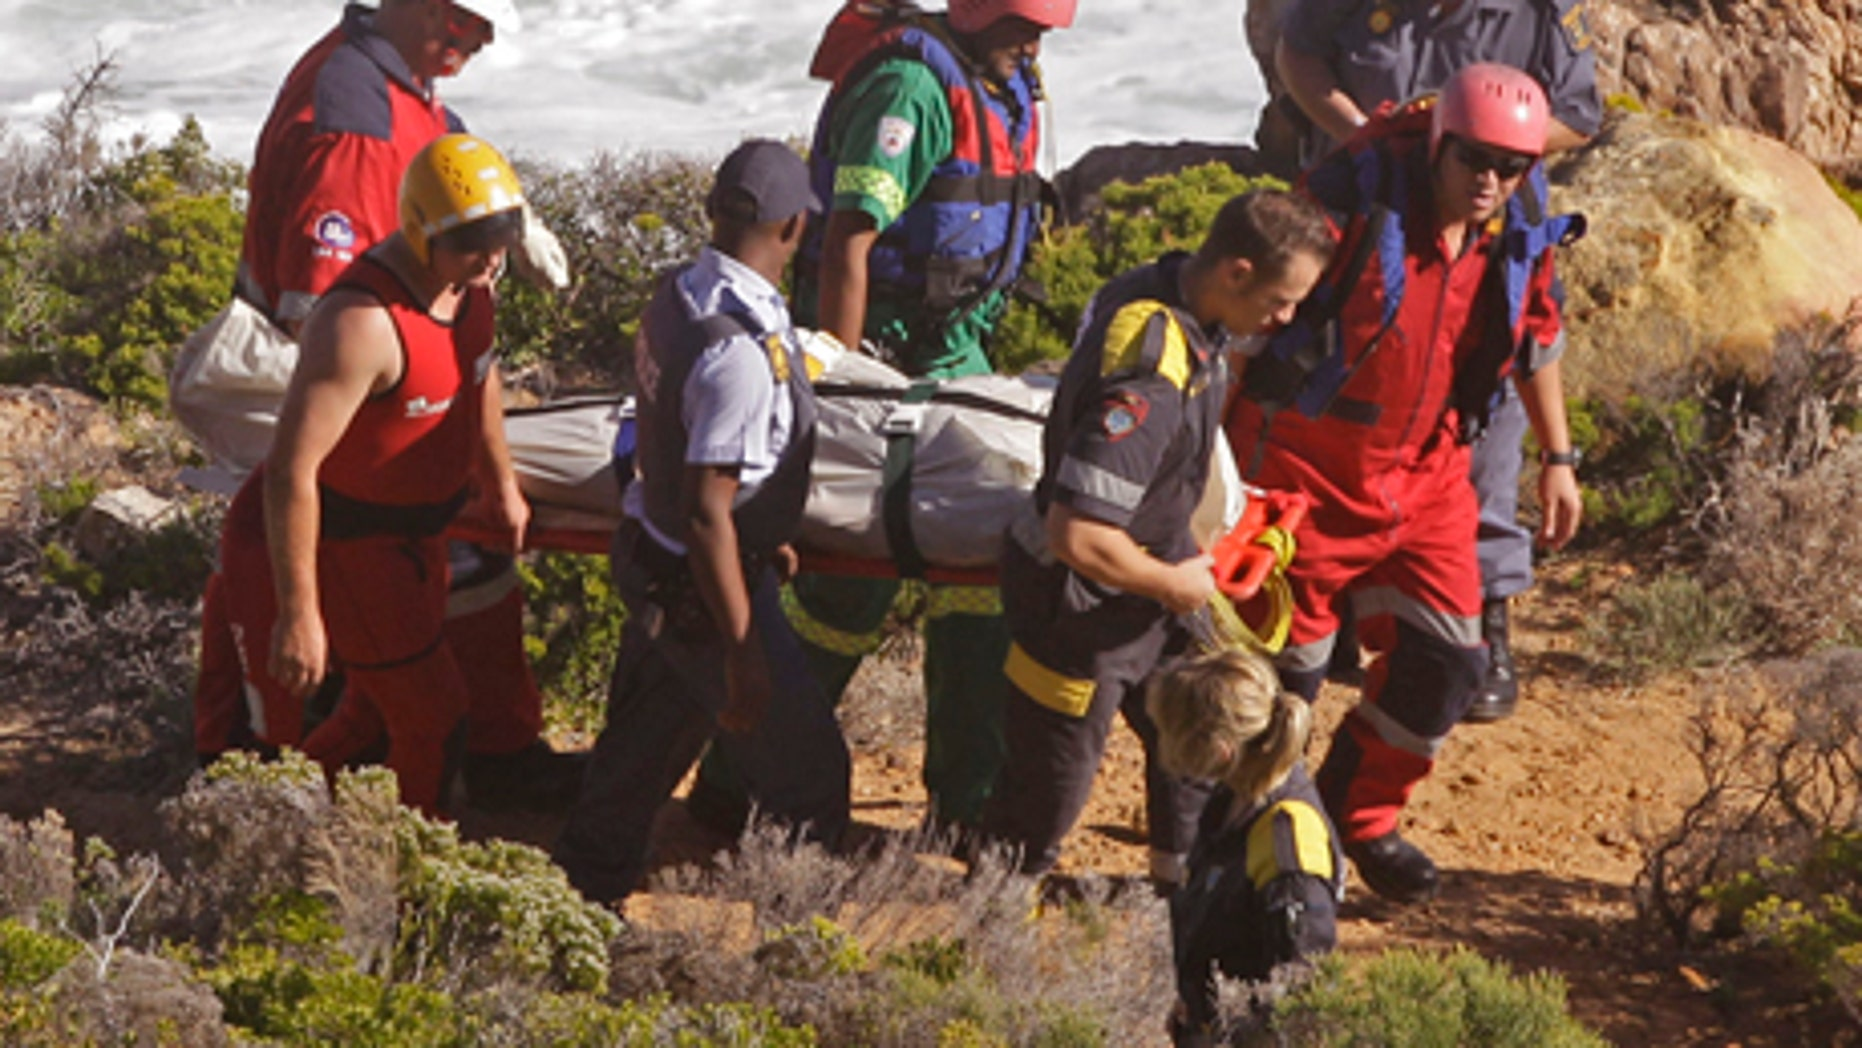 April 19, 2012: The body of a shark attack victim is carried by Police and Rescue personnel near the coastal town of Gordon's Bay, South Africa.